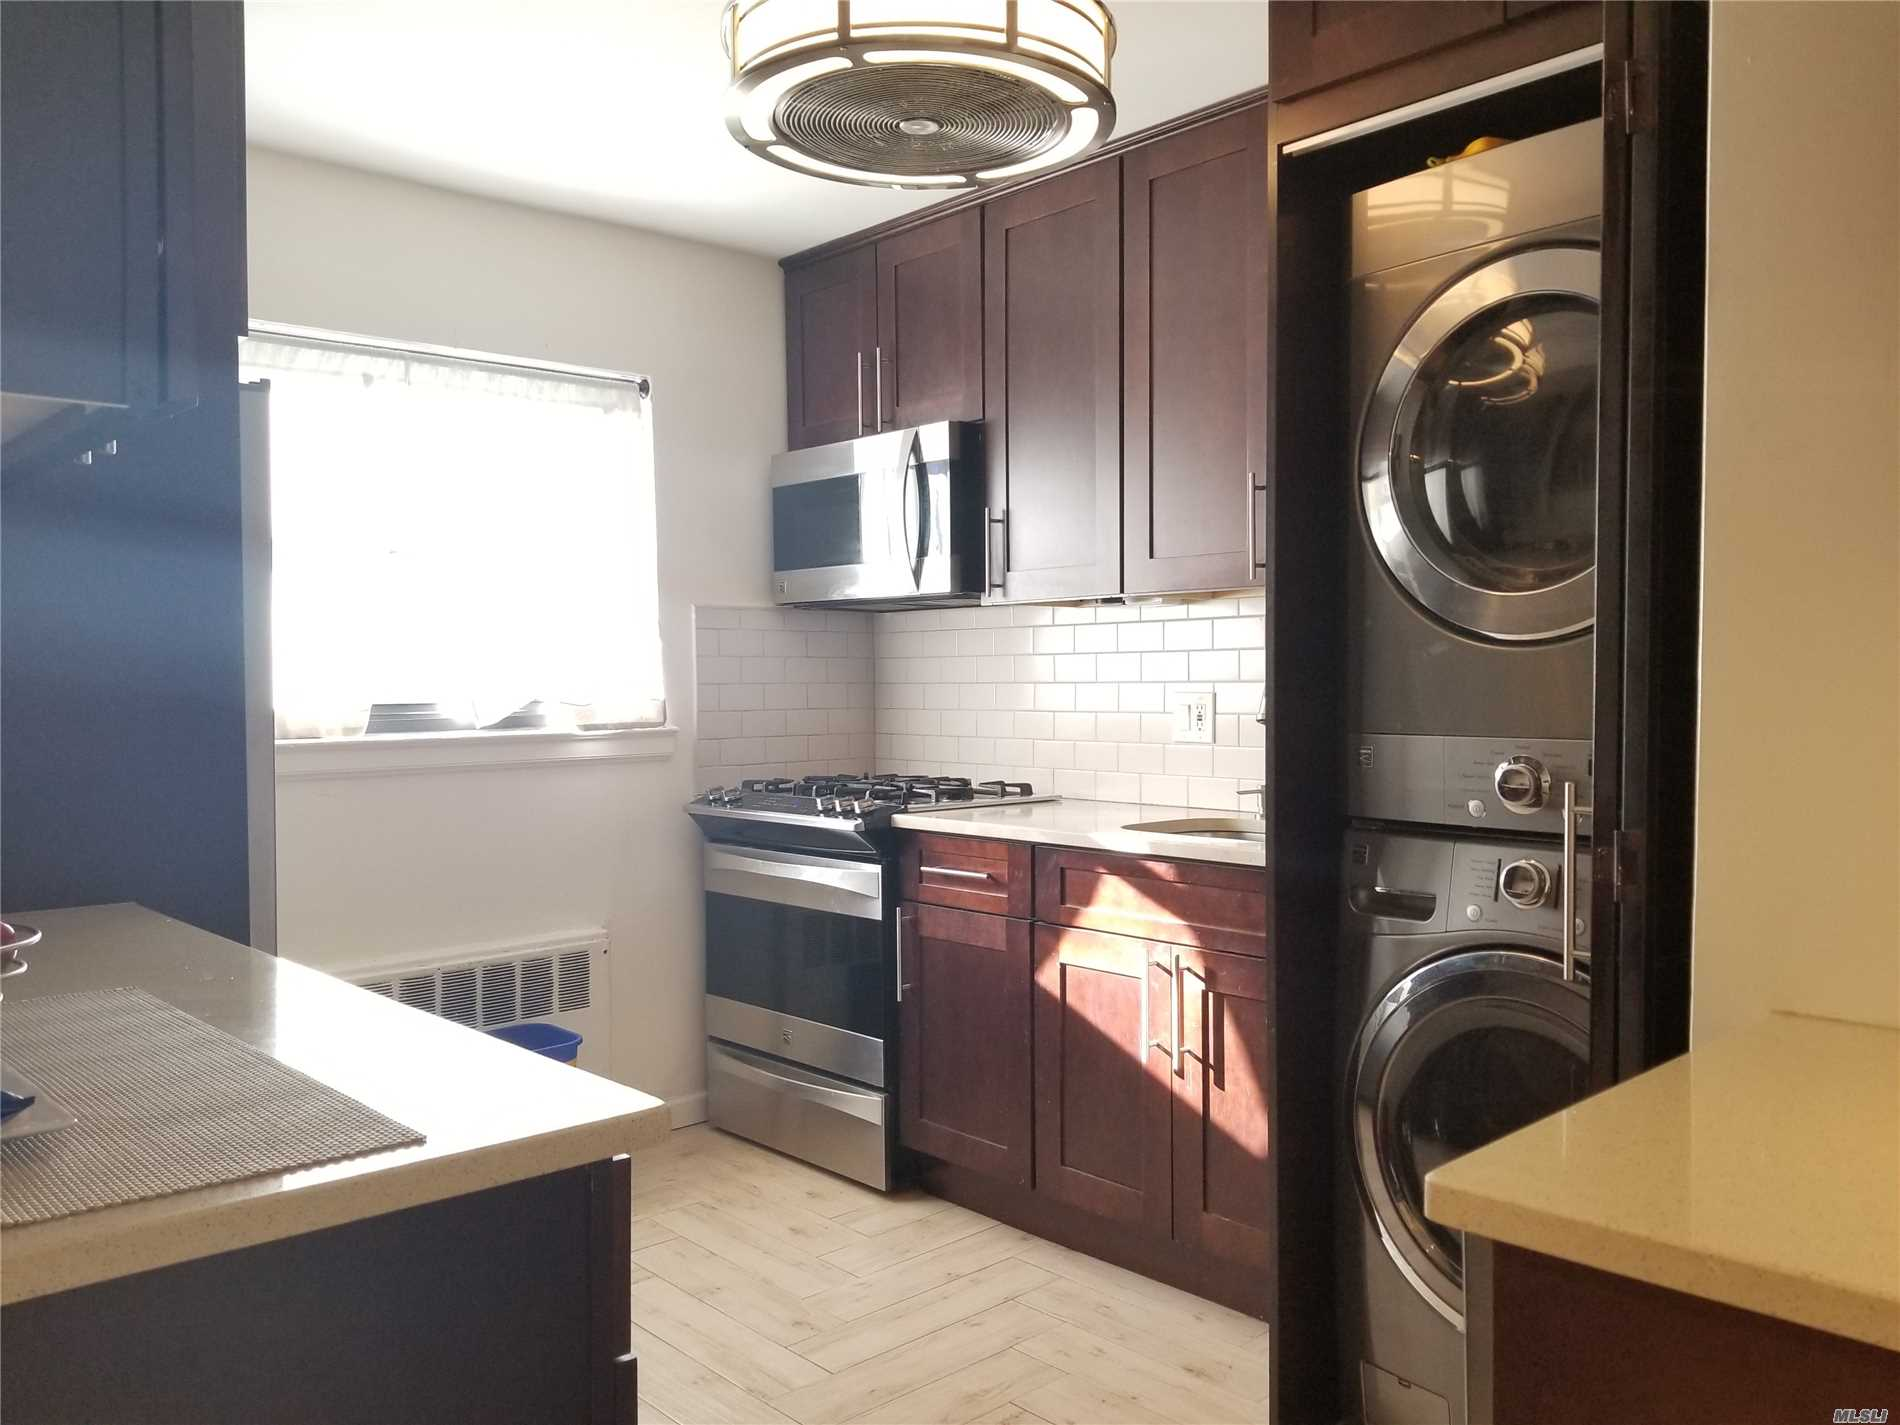 Largest Corner Unit On 2nd Fl., Newly Renovated Beautiful Kitchen, Mint Condition, Electricity Upgraded To 220 Amp, Windsor Oaks Is Self-Managed, Situated On 43 Acres Of Professional Landscaped, Free Outdoor Parking, Garages For Rent At $150, Very Well Known Alley Pond Park And Cunningham Park Surrounded. Can Have Plenty Of Activities For The Whole Family, Sd#26, Pet Friendly, 100% Equity Coop, Bus Qm5, Qm8, Q88, Q27, Sublet Possible, This Is The Must See Unit Among All